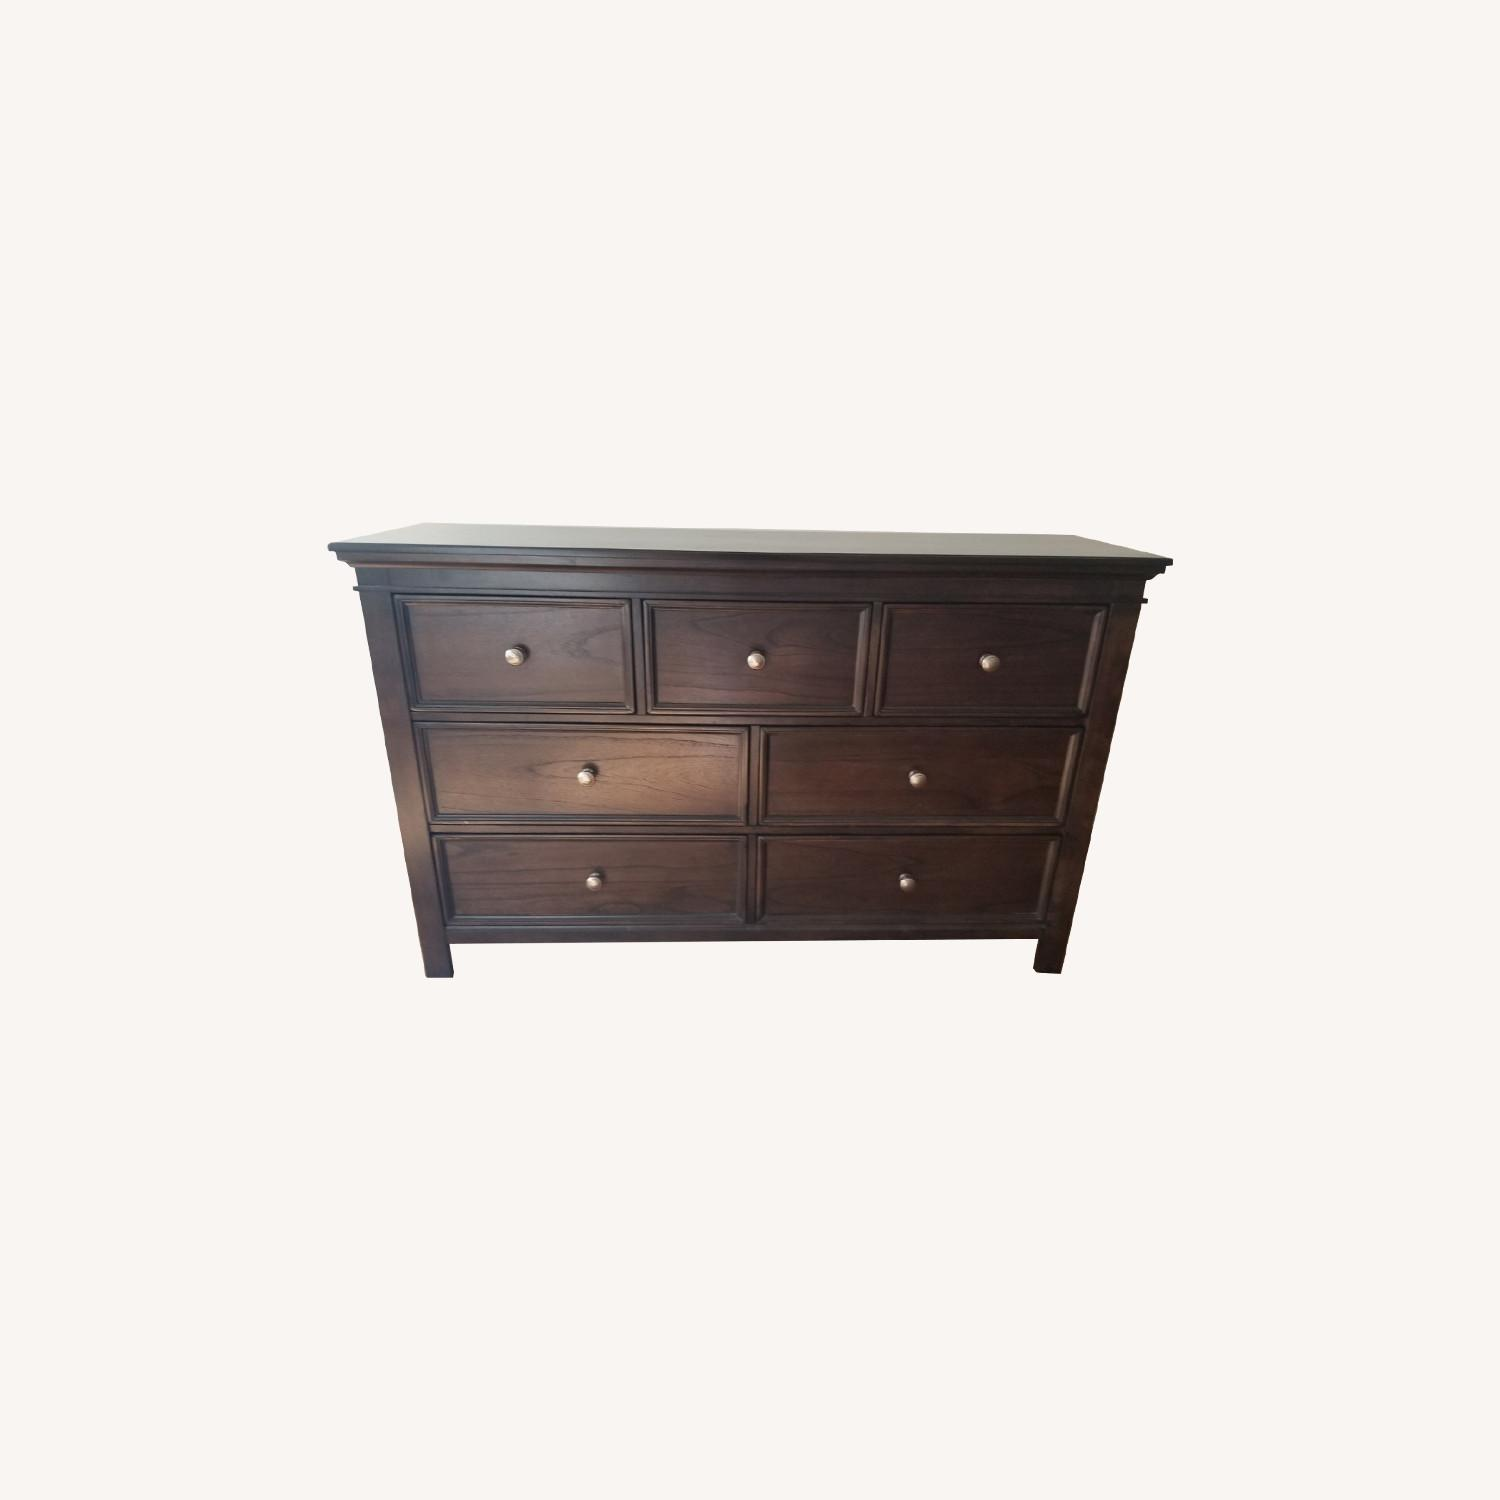 Ashley Furniture Alexee Dresser - image-0